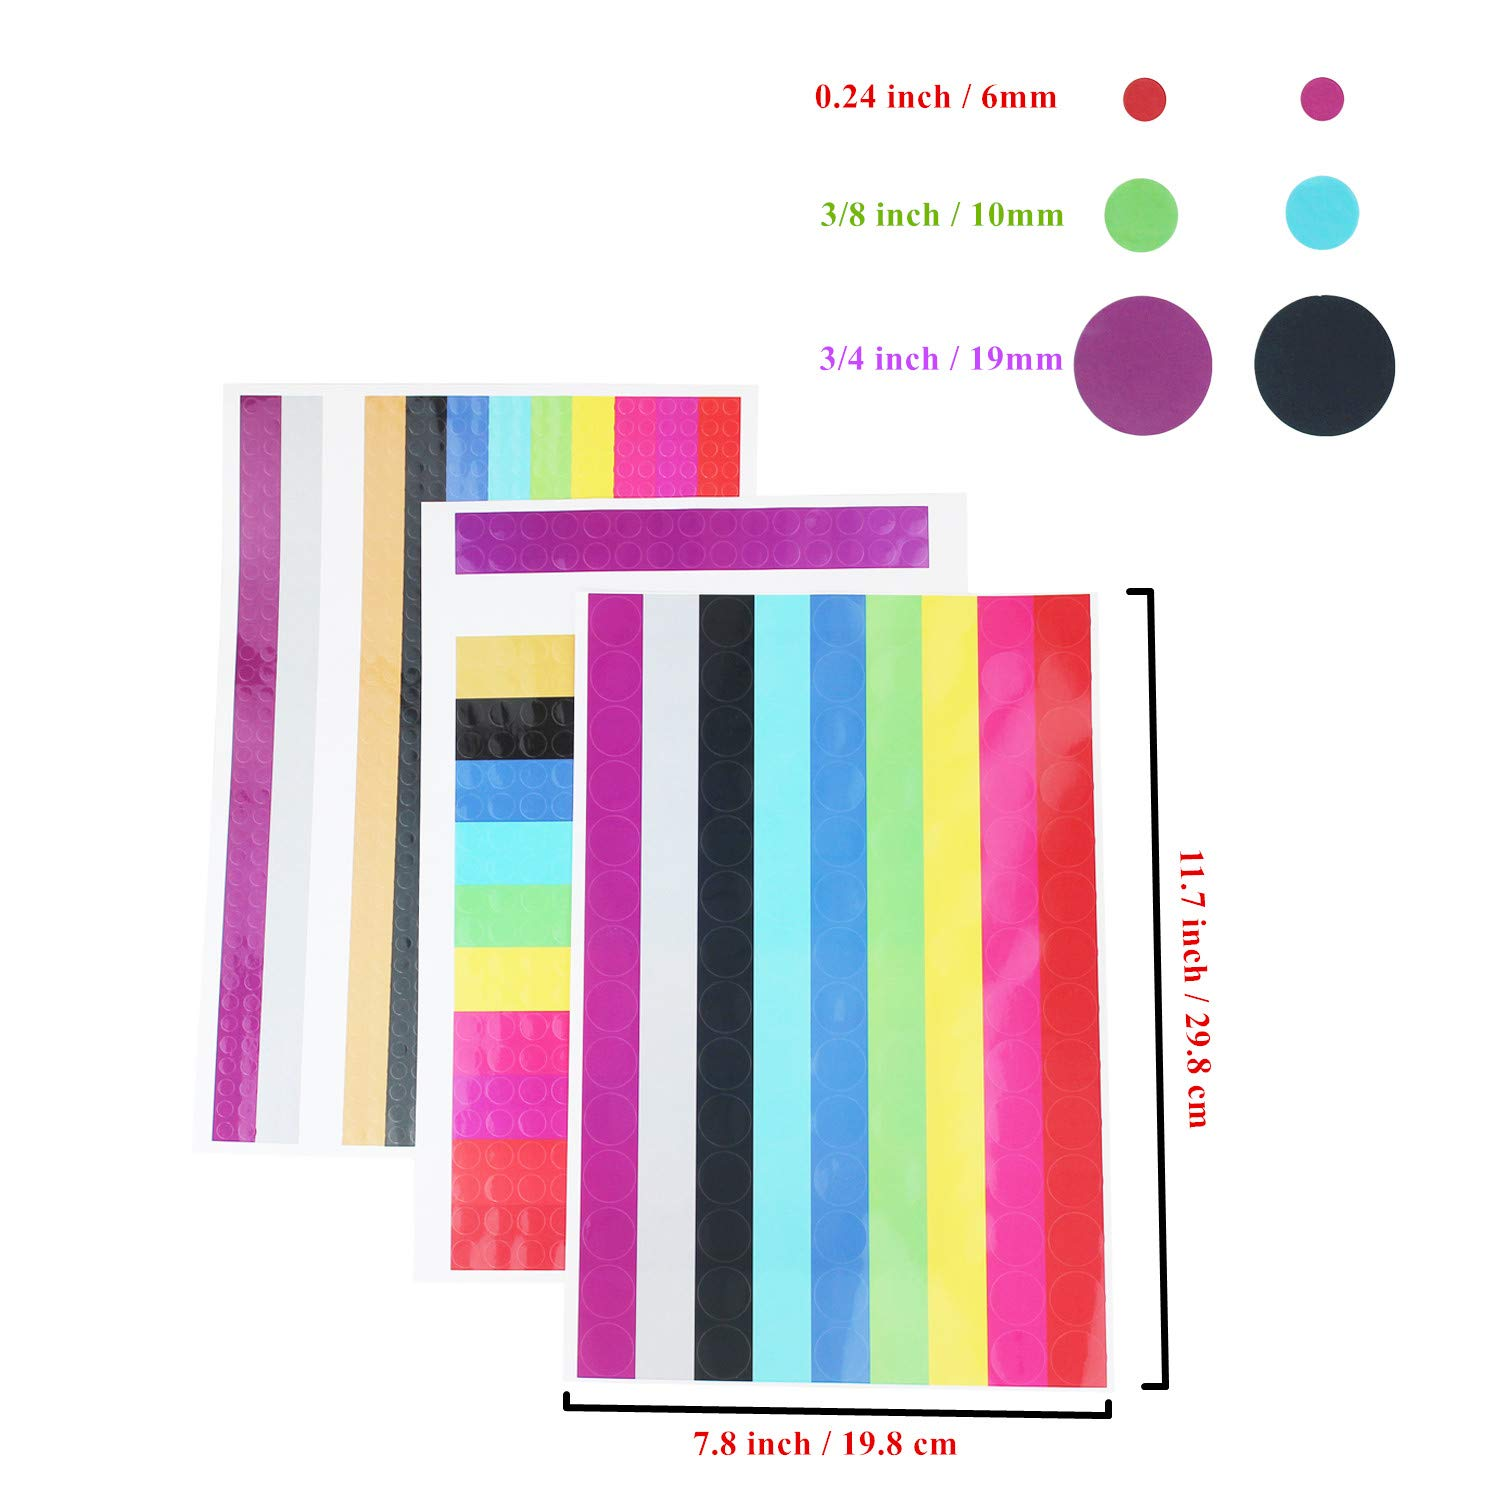 6mm LJY Round Dot Stickers Color Coding Labels 9360 Dots in Total Assorted Colors 10mm /& 19mm Mixed Sizes 24 Sheets